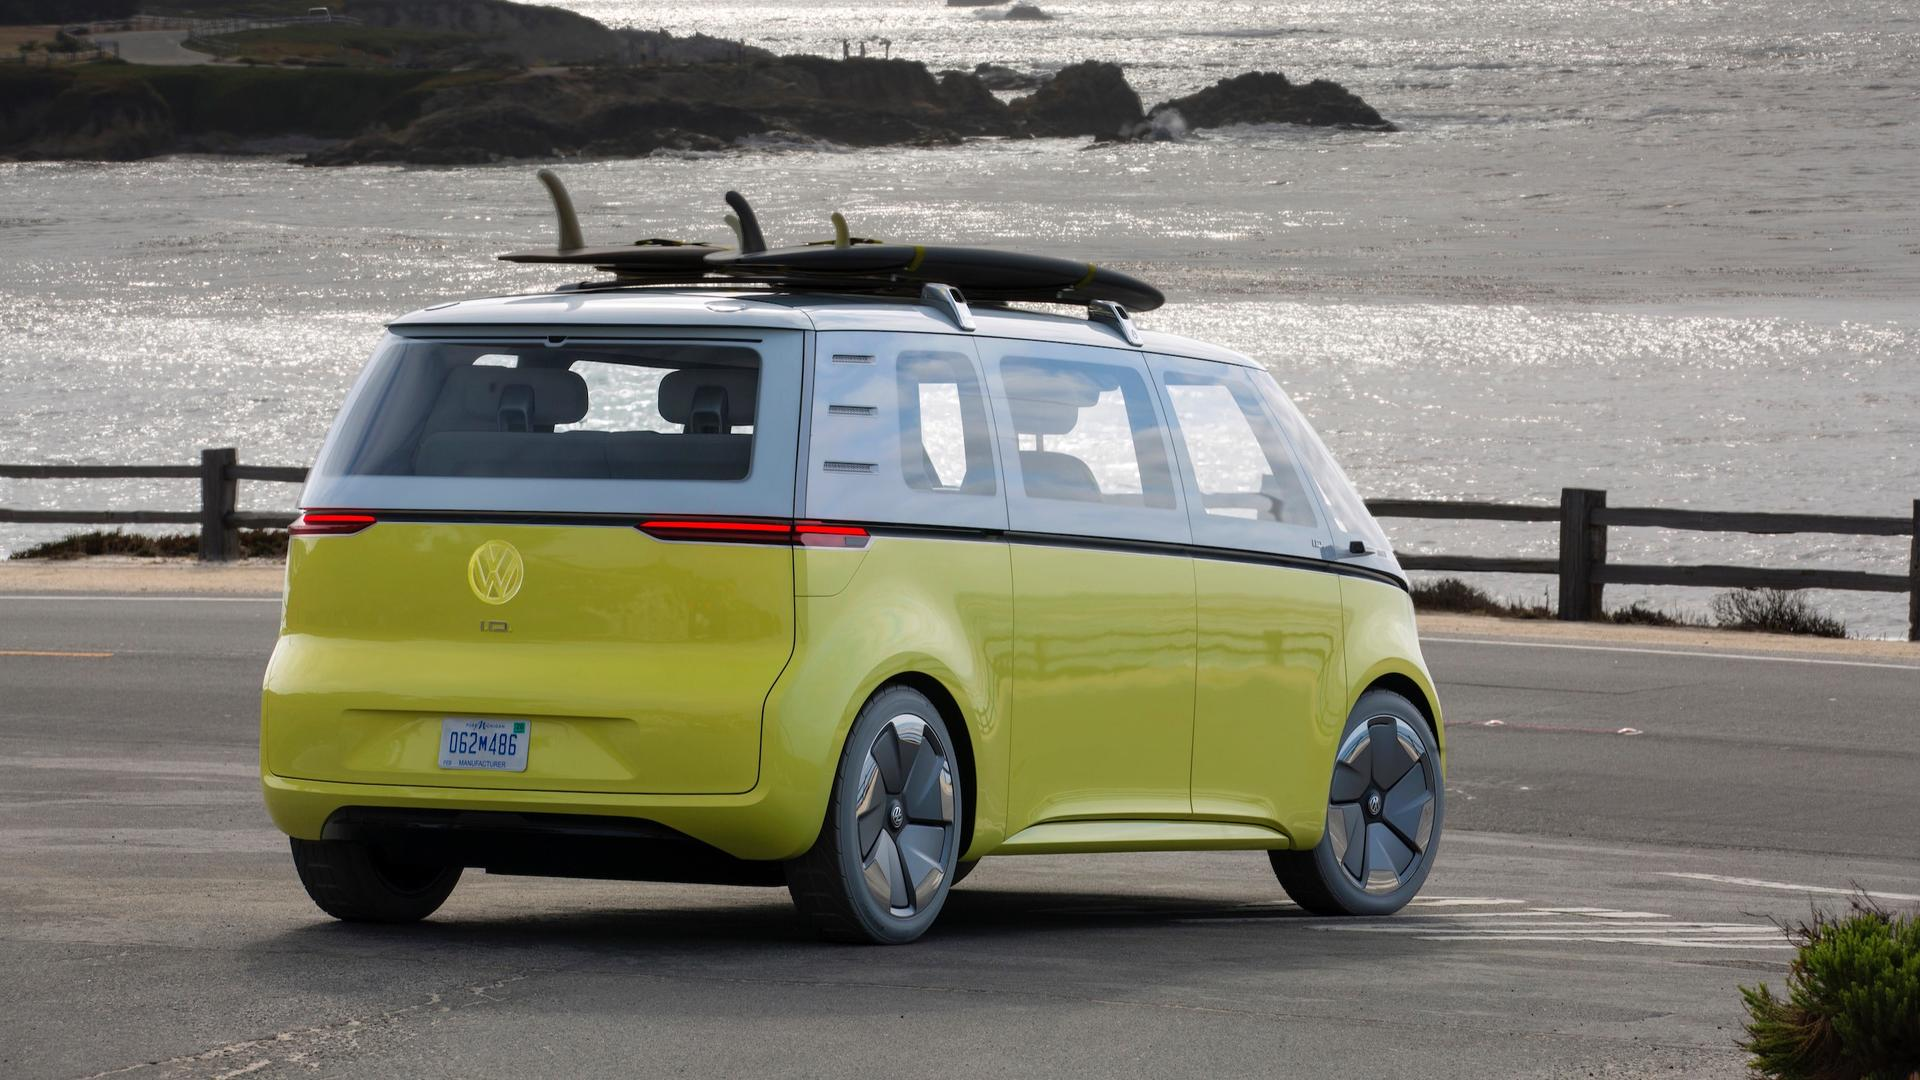 According to Volkswagen, its first mass-market electric MPV will emerge in three different variants targeting different countries and audiences. Let's see what these are.